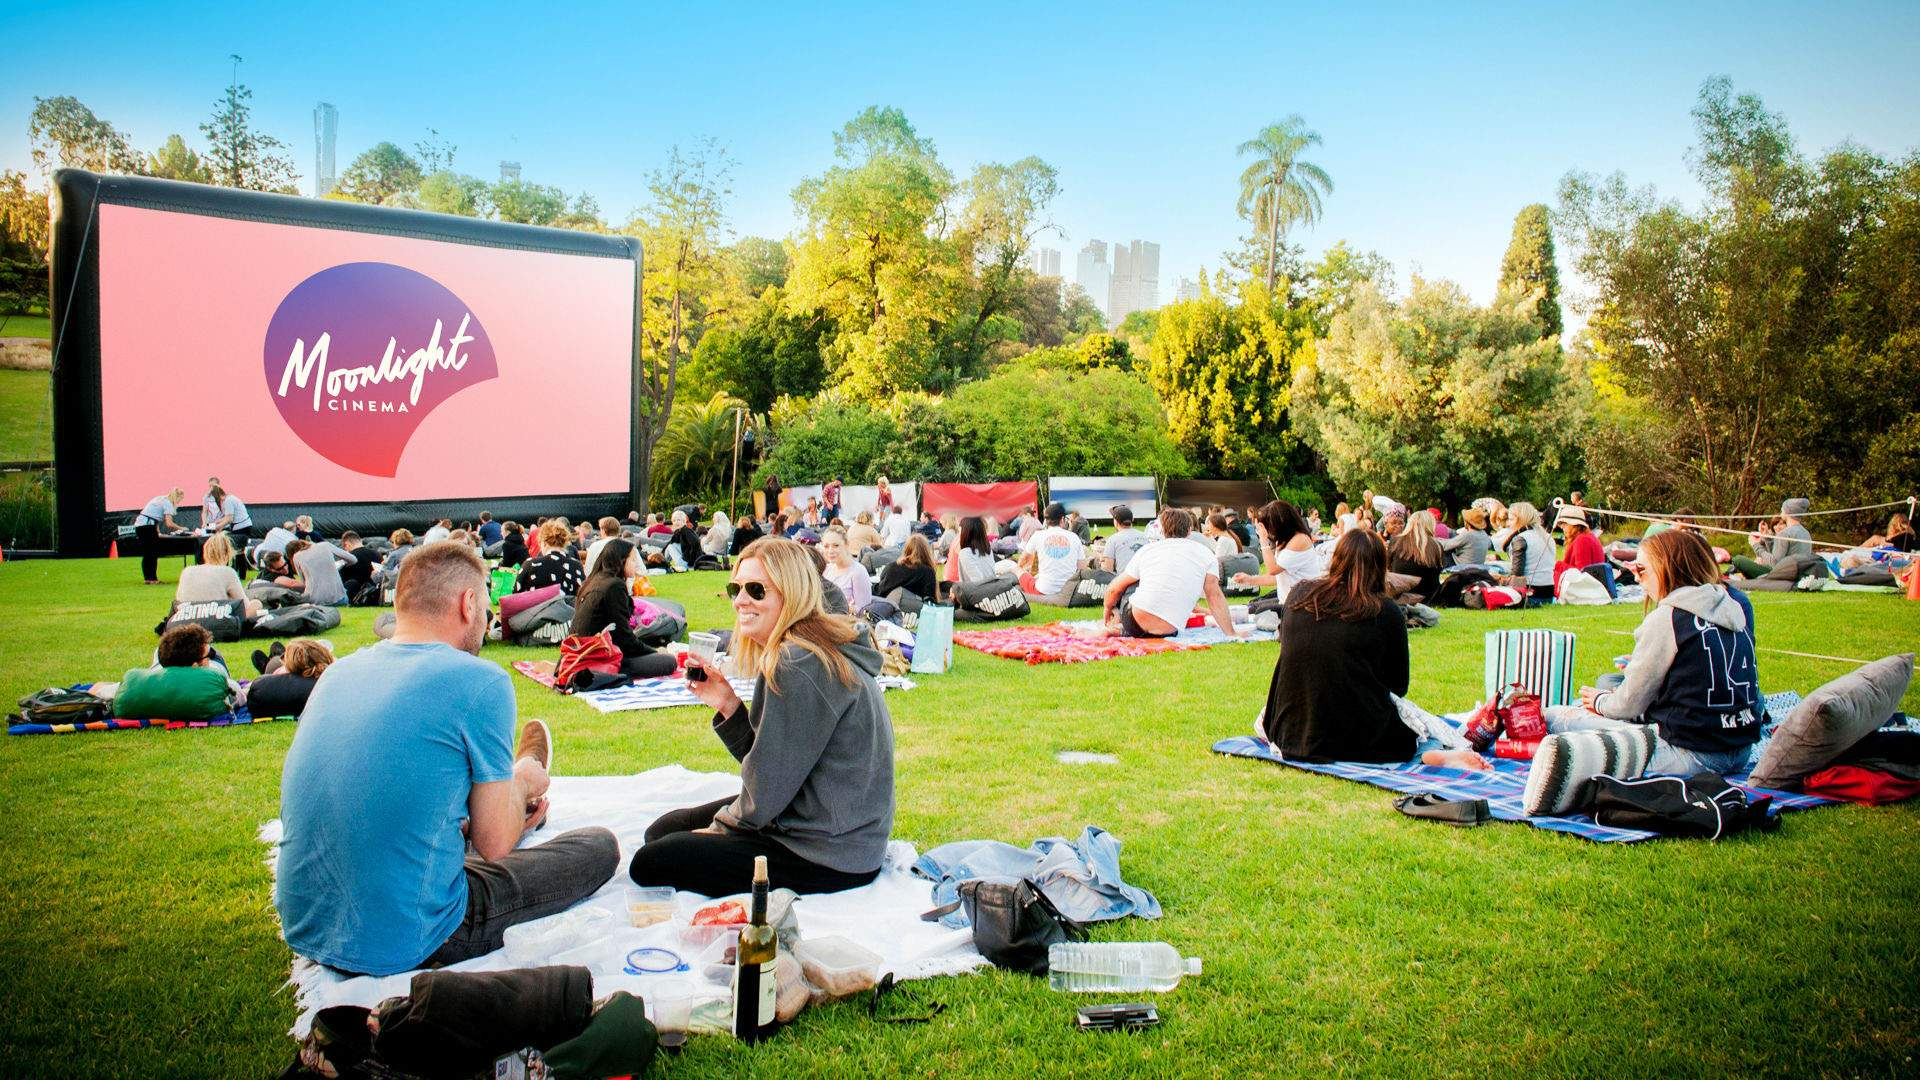 Moonlight Cinema 2021